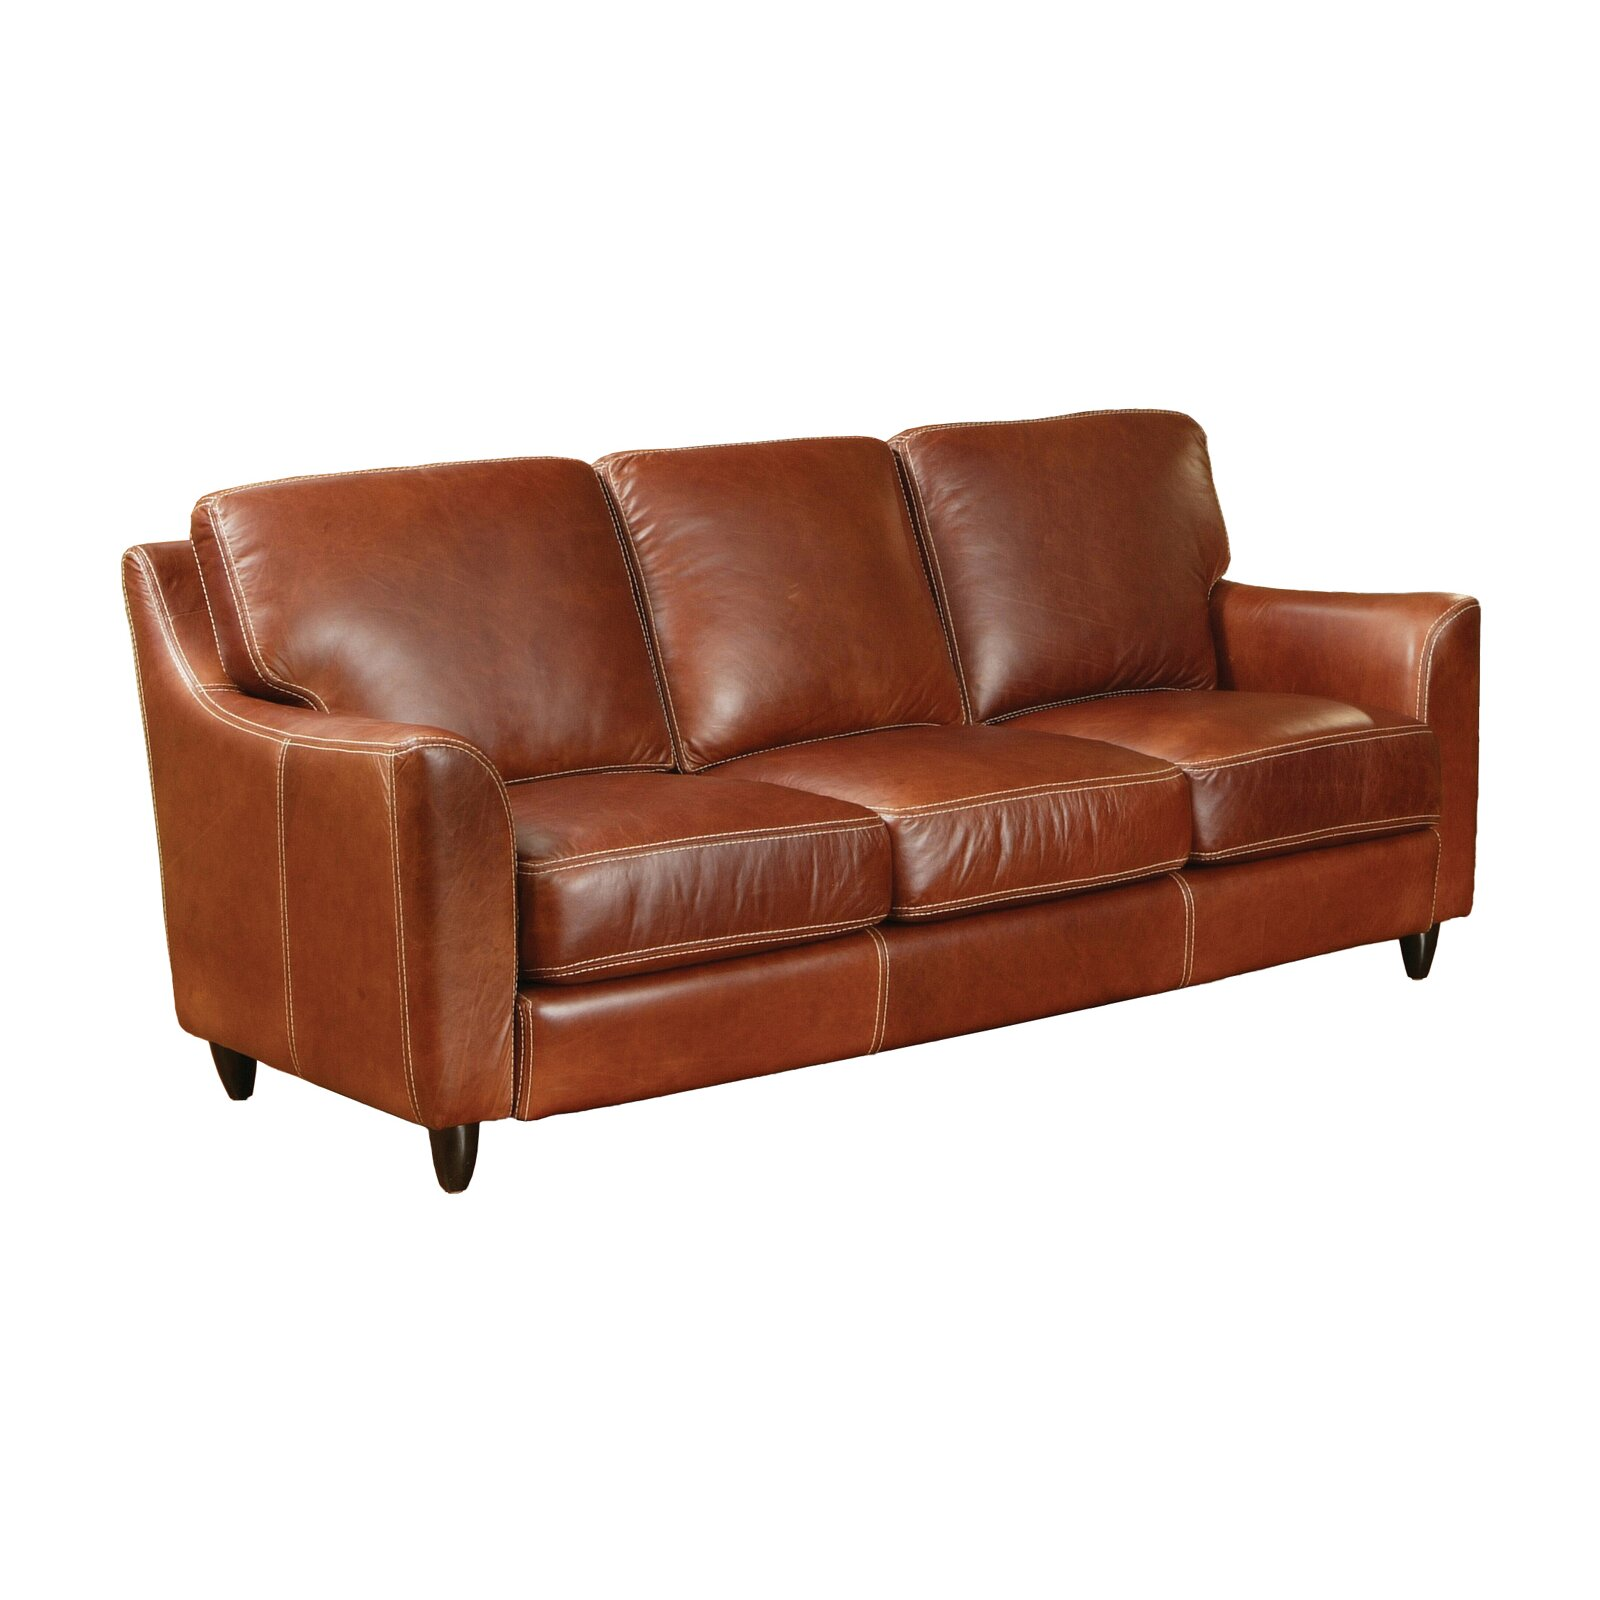 Omnia leather great texas leather sofa reviews wayfair for Leather sofa reviews